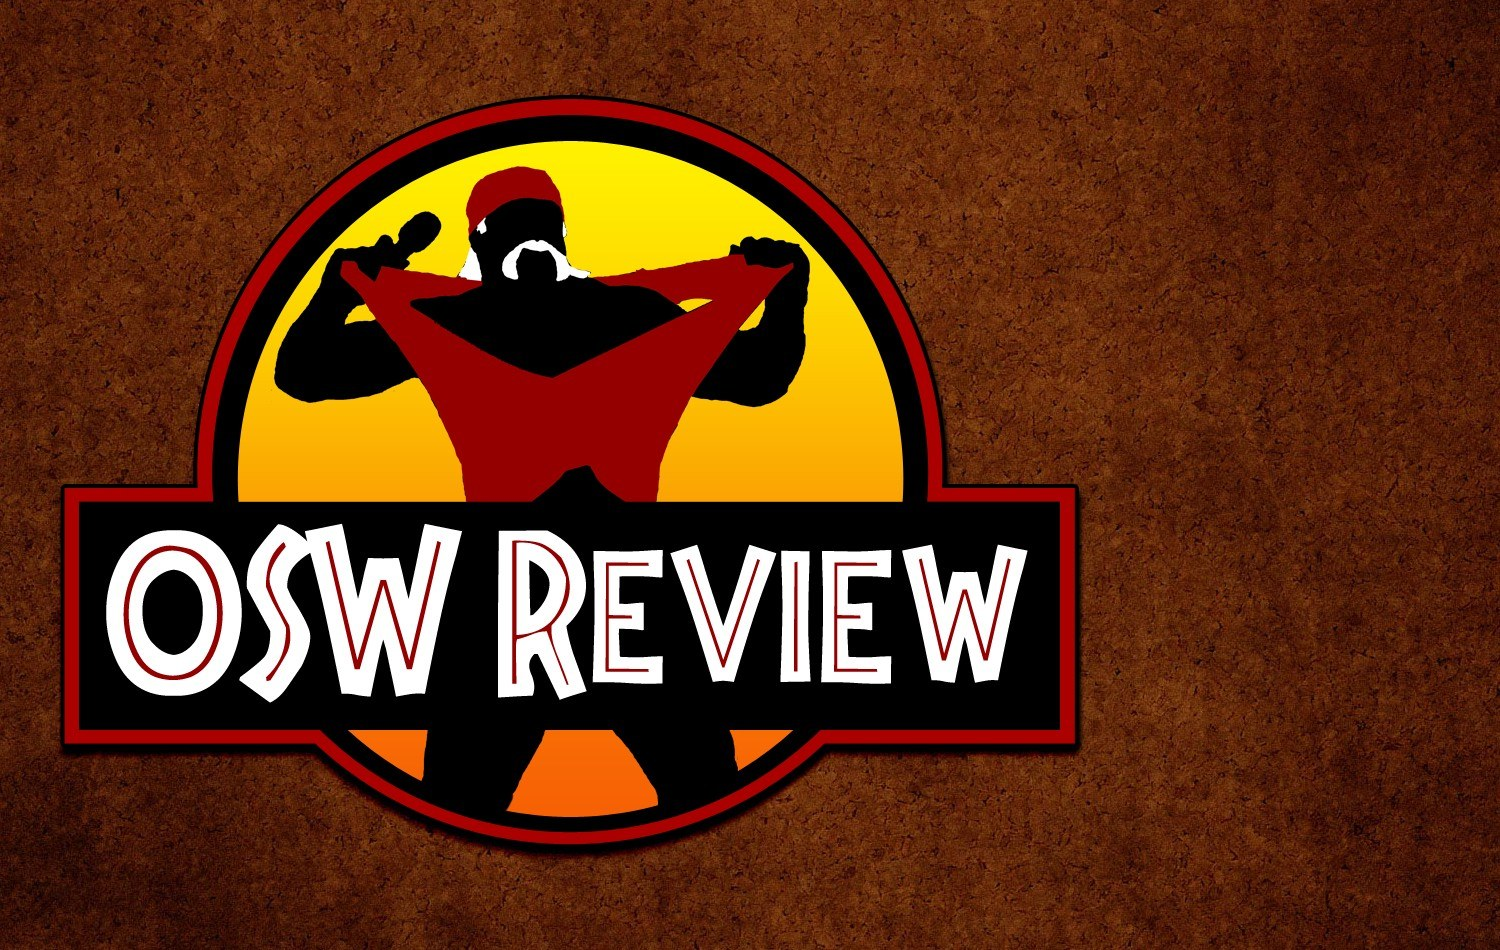 Osw Review  Old School Wrestling *video* Reviews